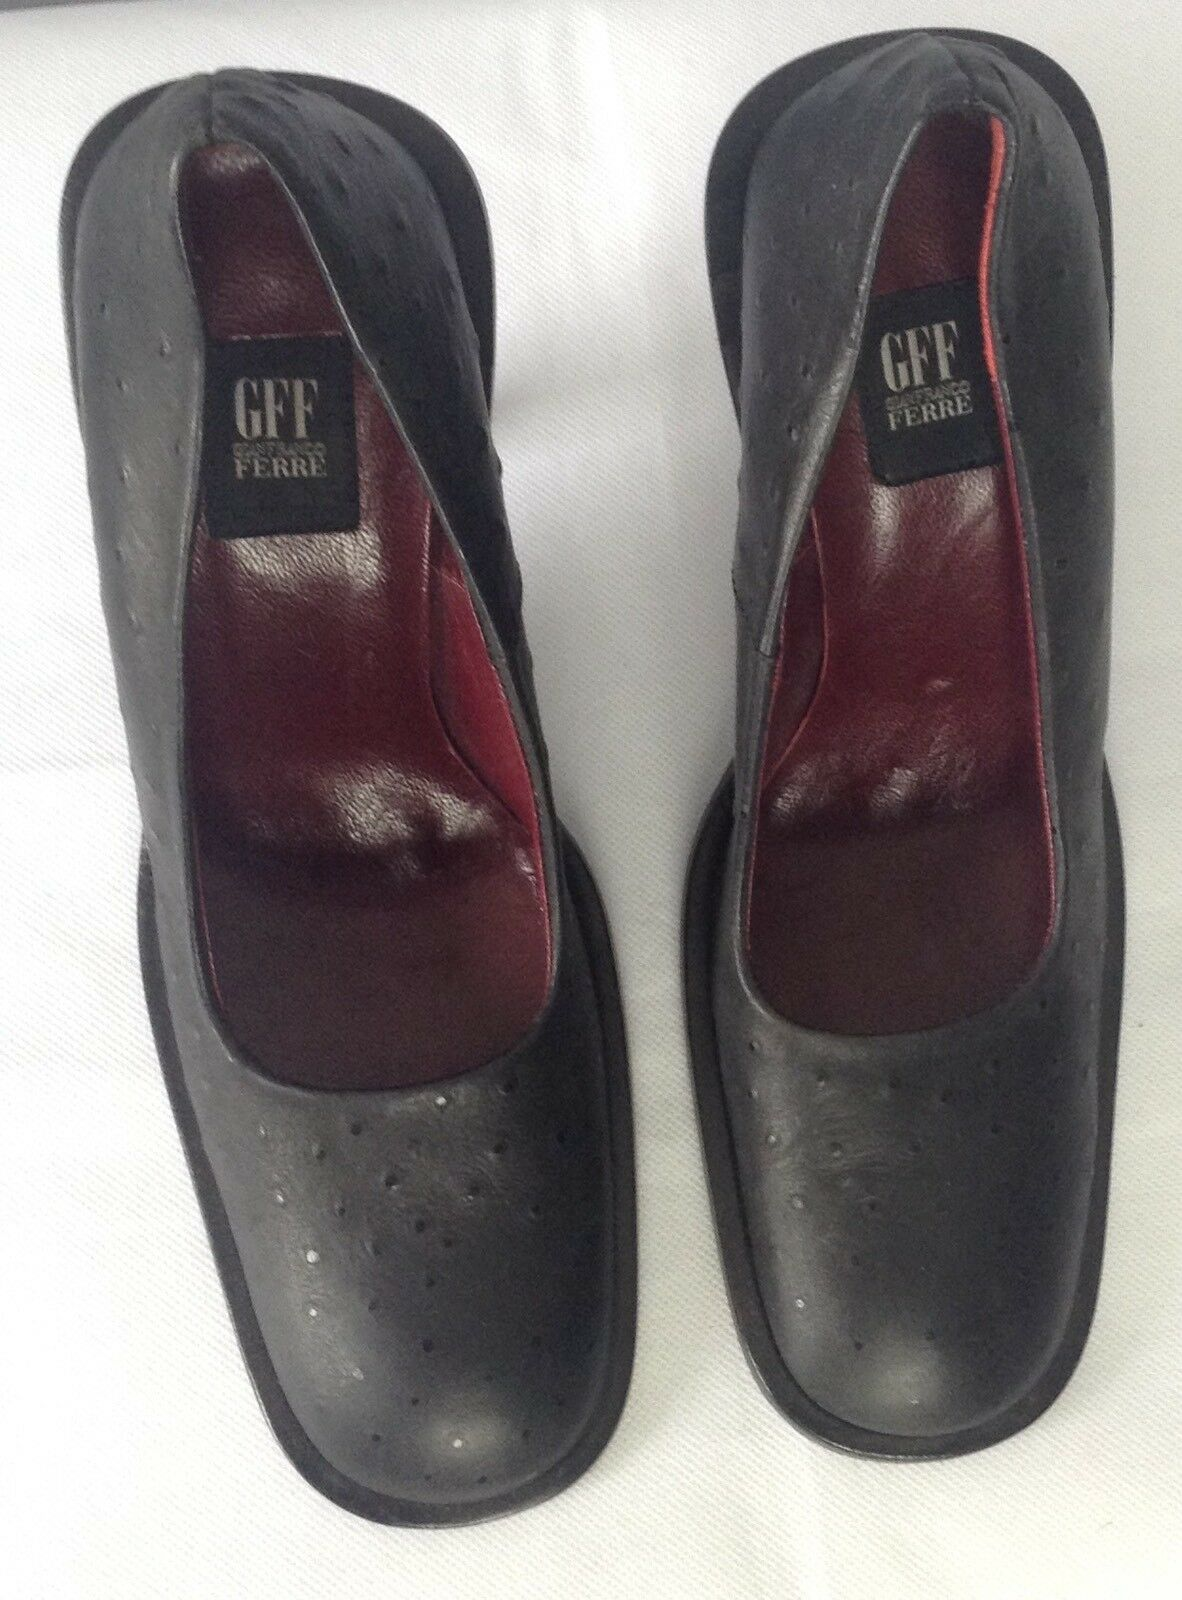 Gianfranco Ferre GFF Pre-owned Heels Good condition